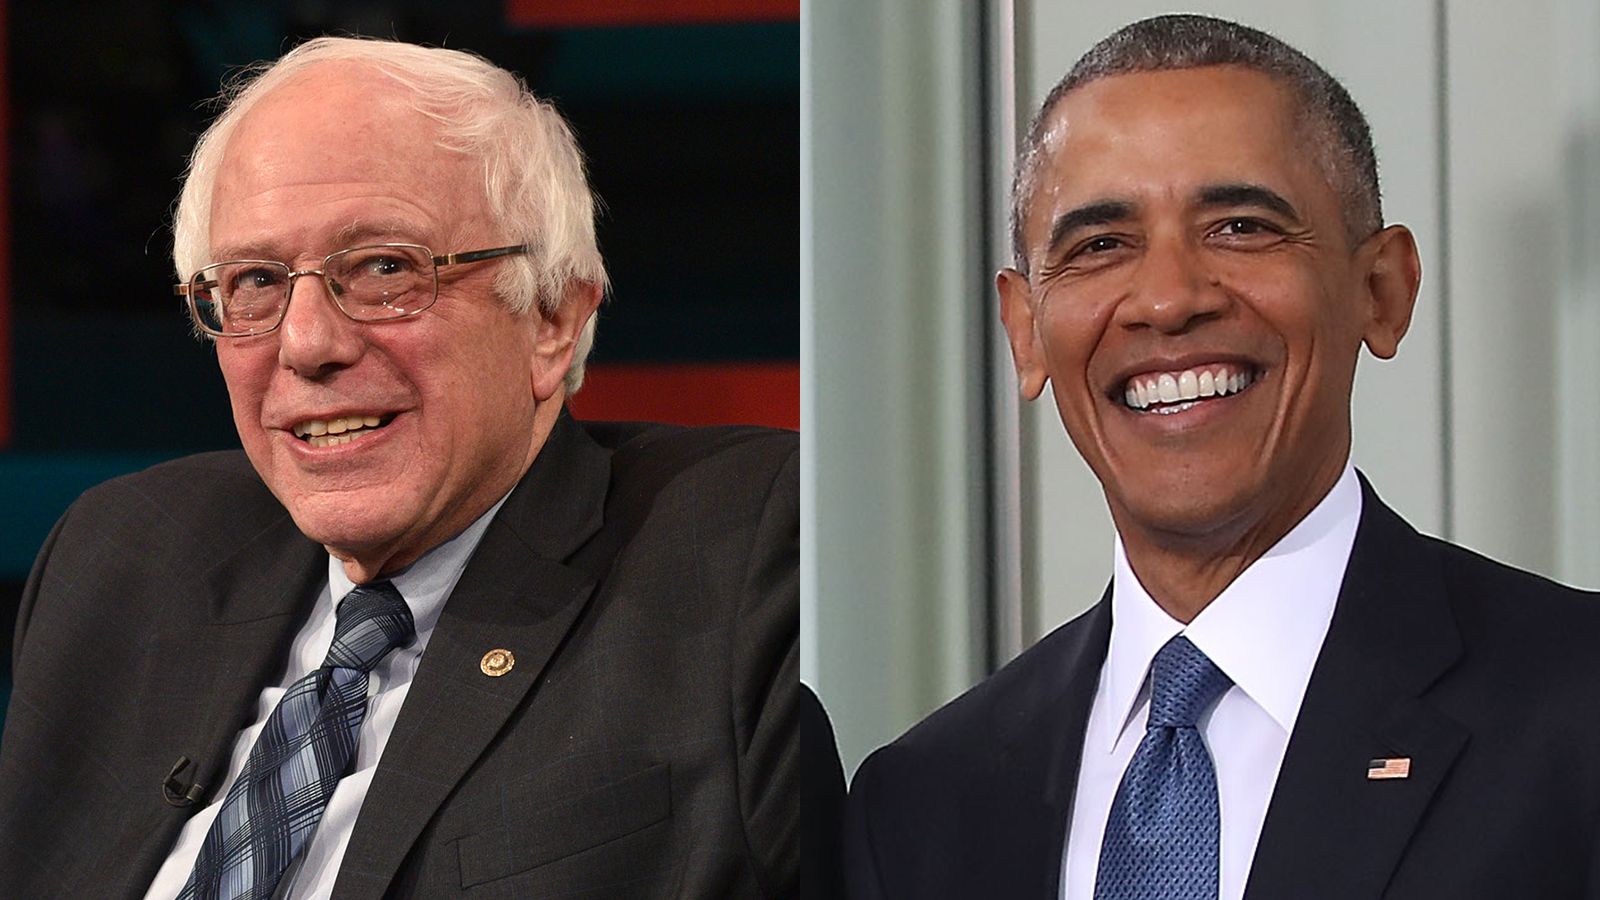 Sanders says Obama would 'be there at my side' if he's the nominee